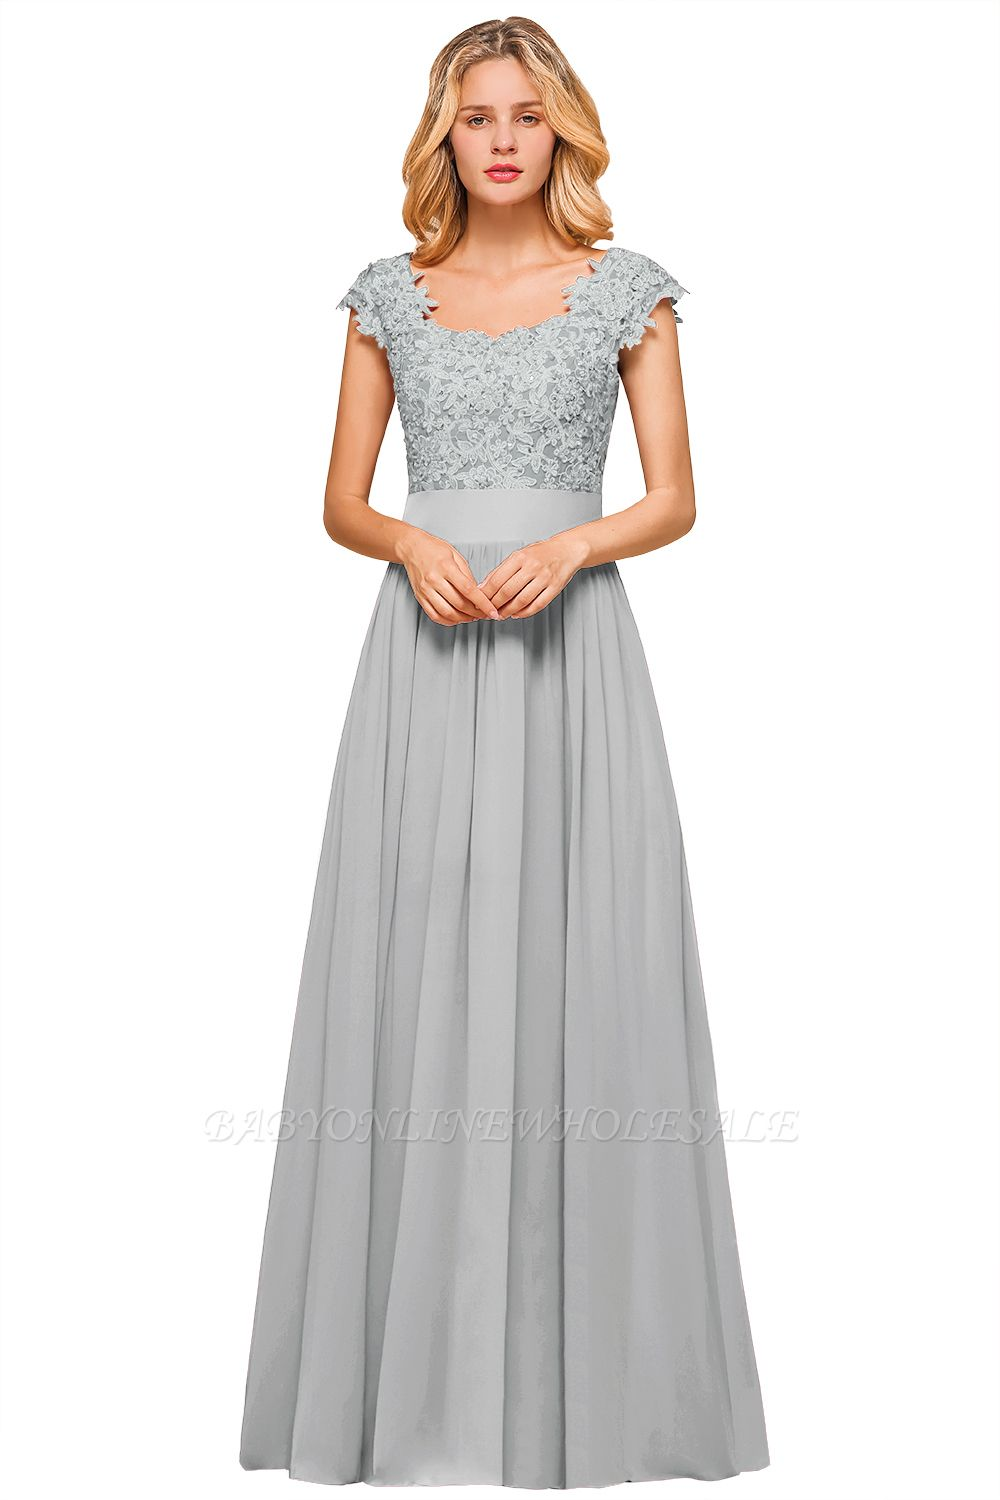 Burgundy Cap sleeves Lace Evening Gowns with Appliques | Chiffon Long Mother of the bride dress